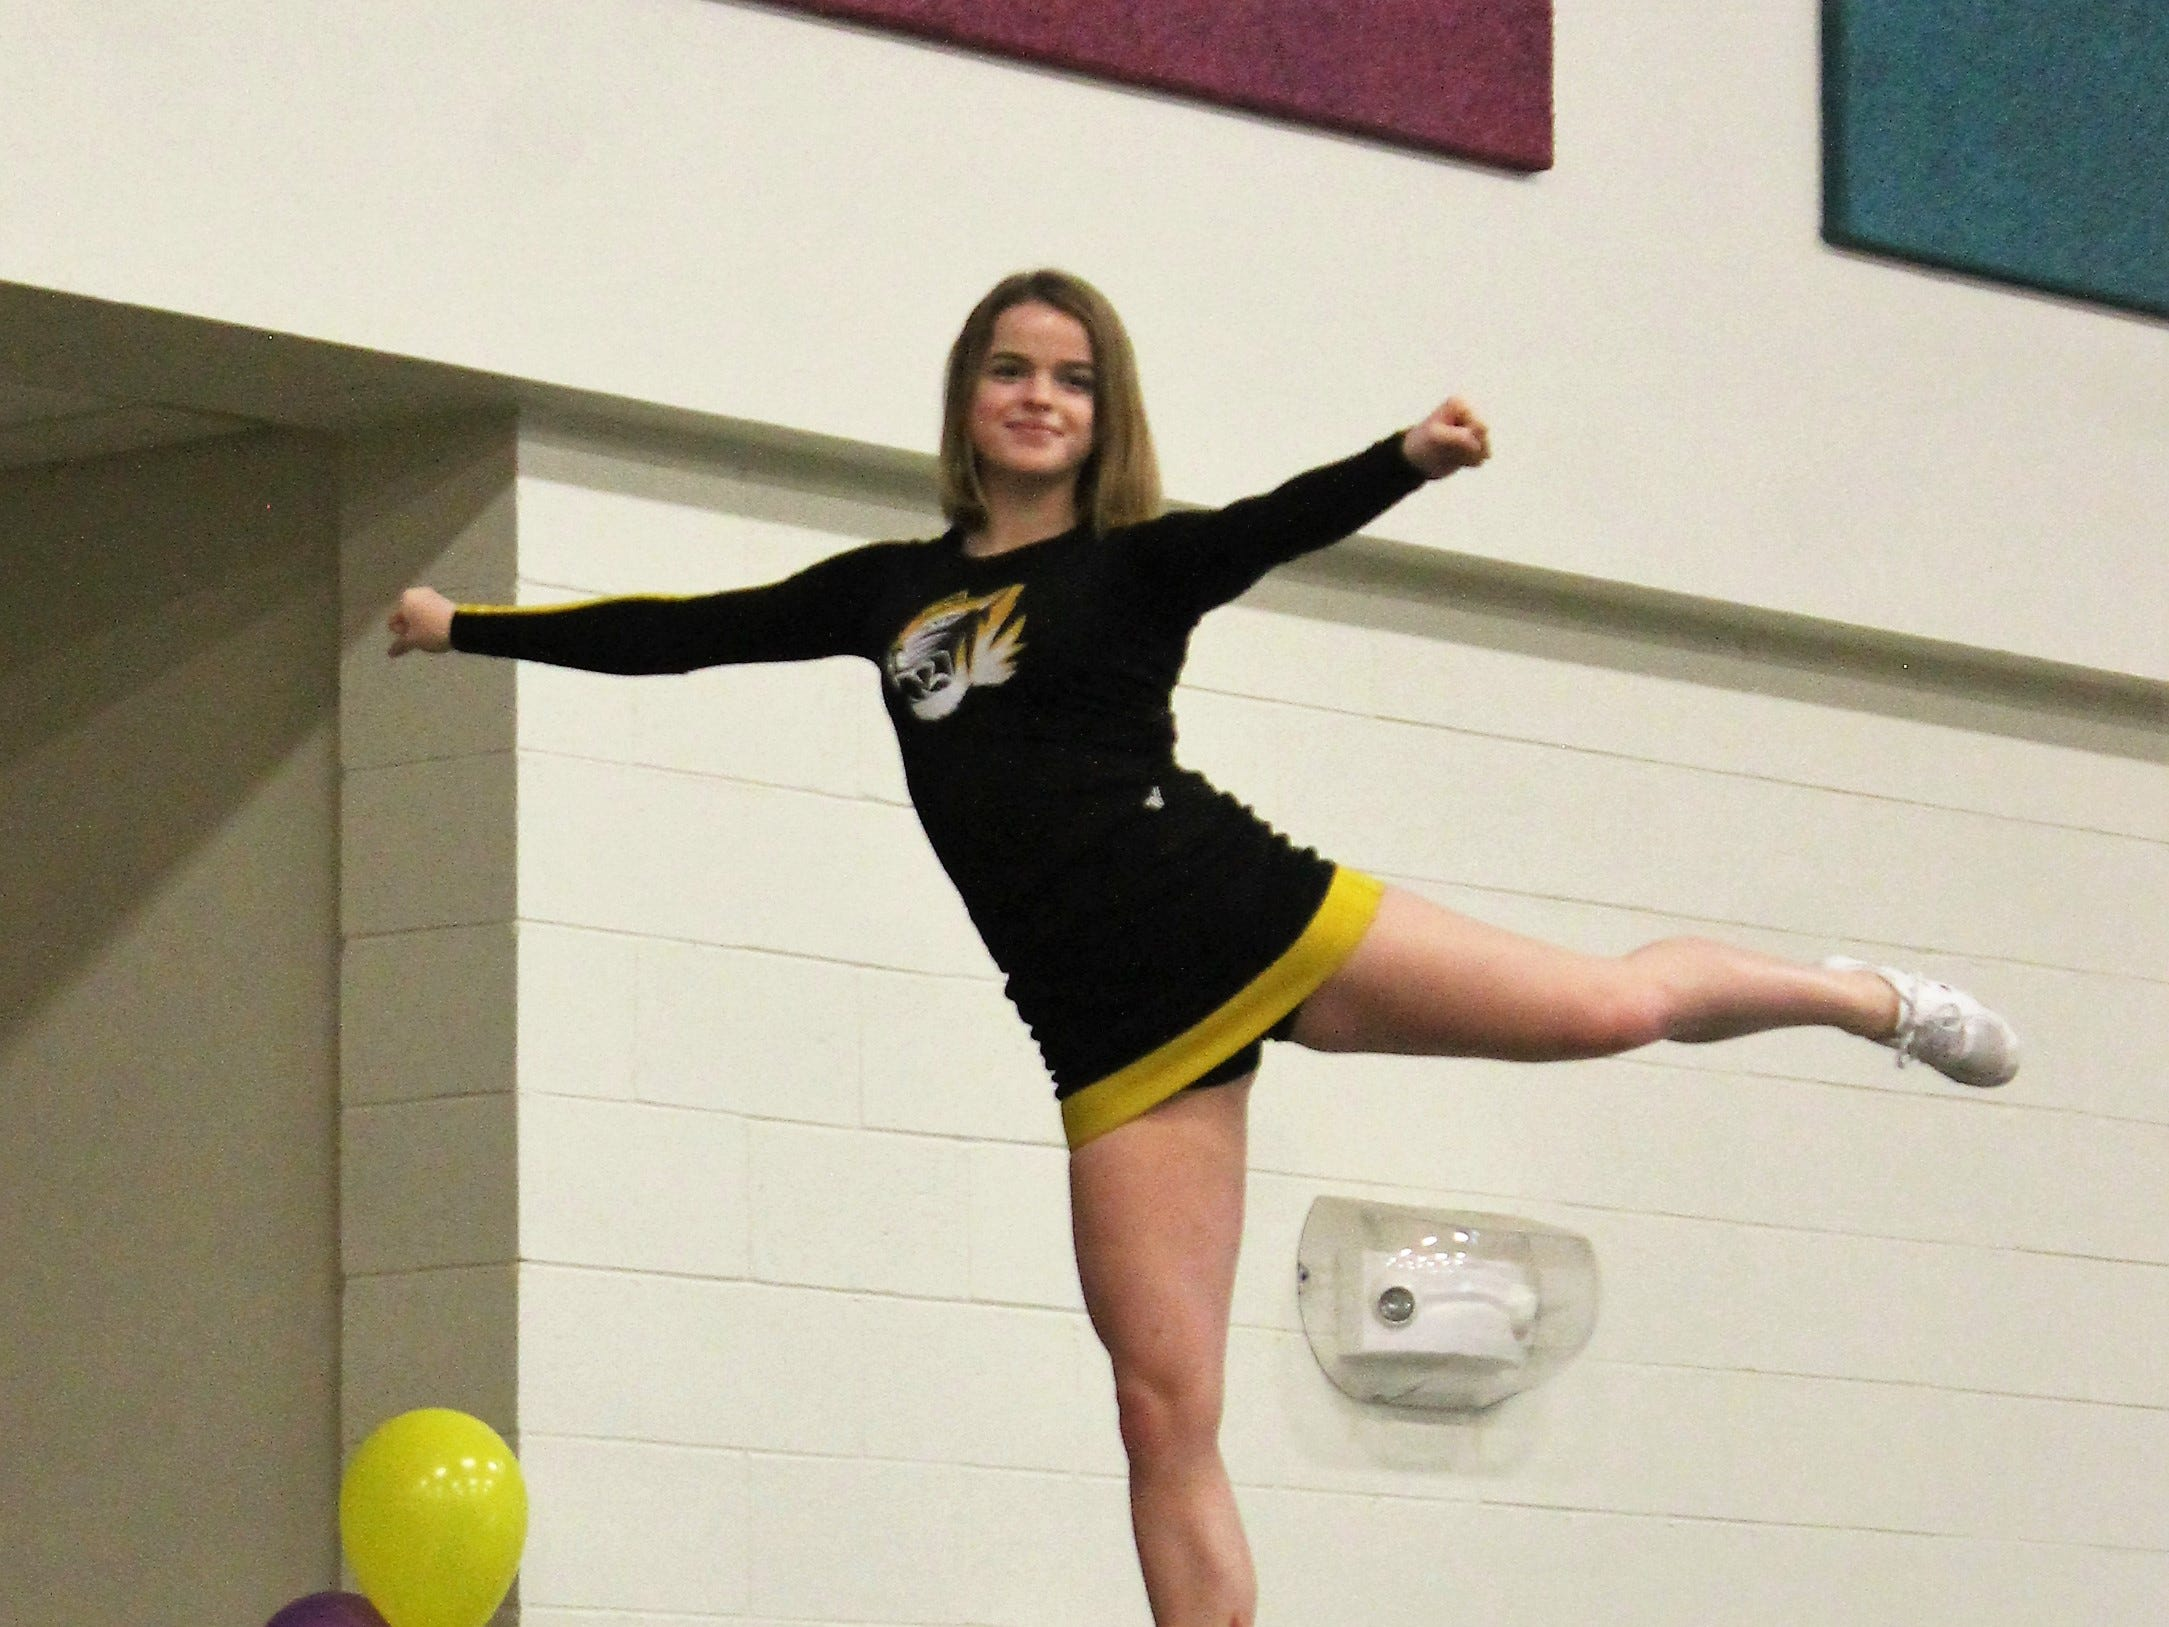 The Alamogordo High School cheerleaders performed for Desert Star Elementary students and staff at an assembly Feb. 14.